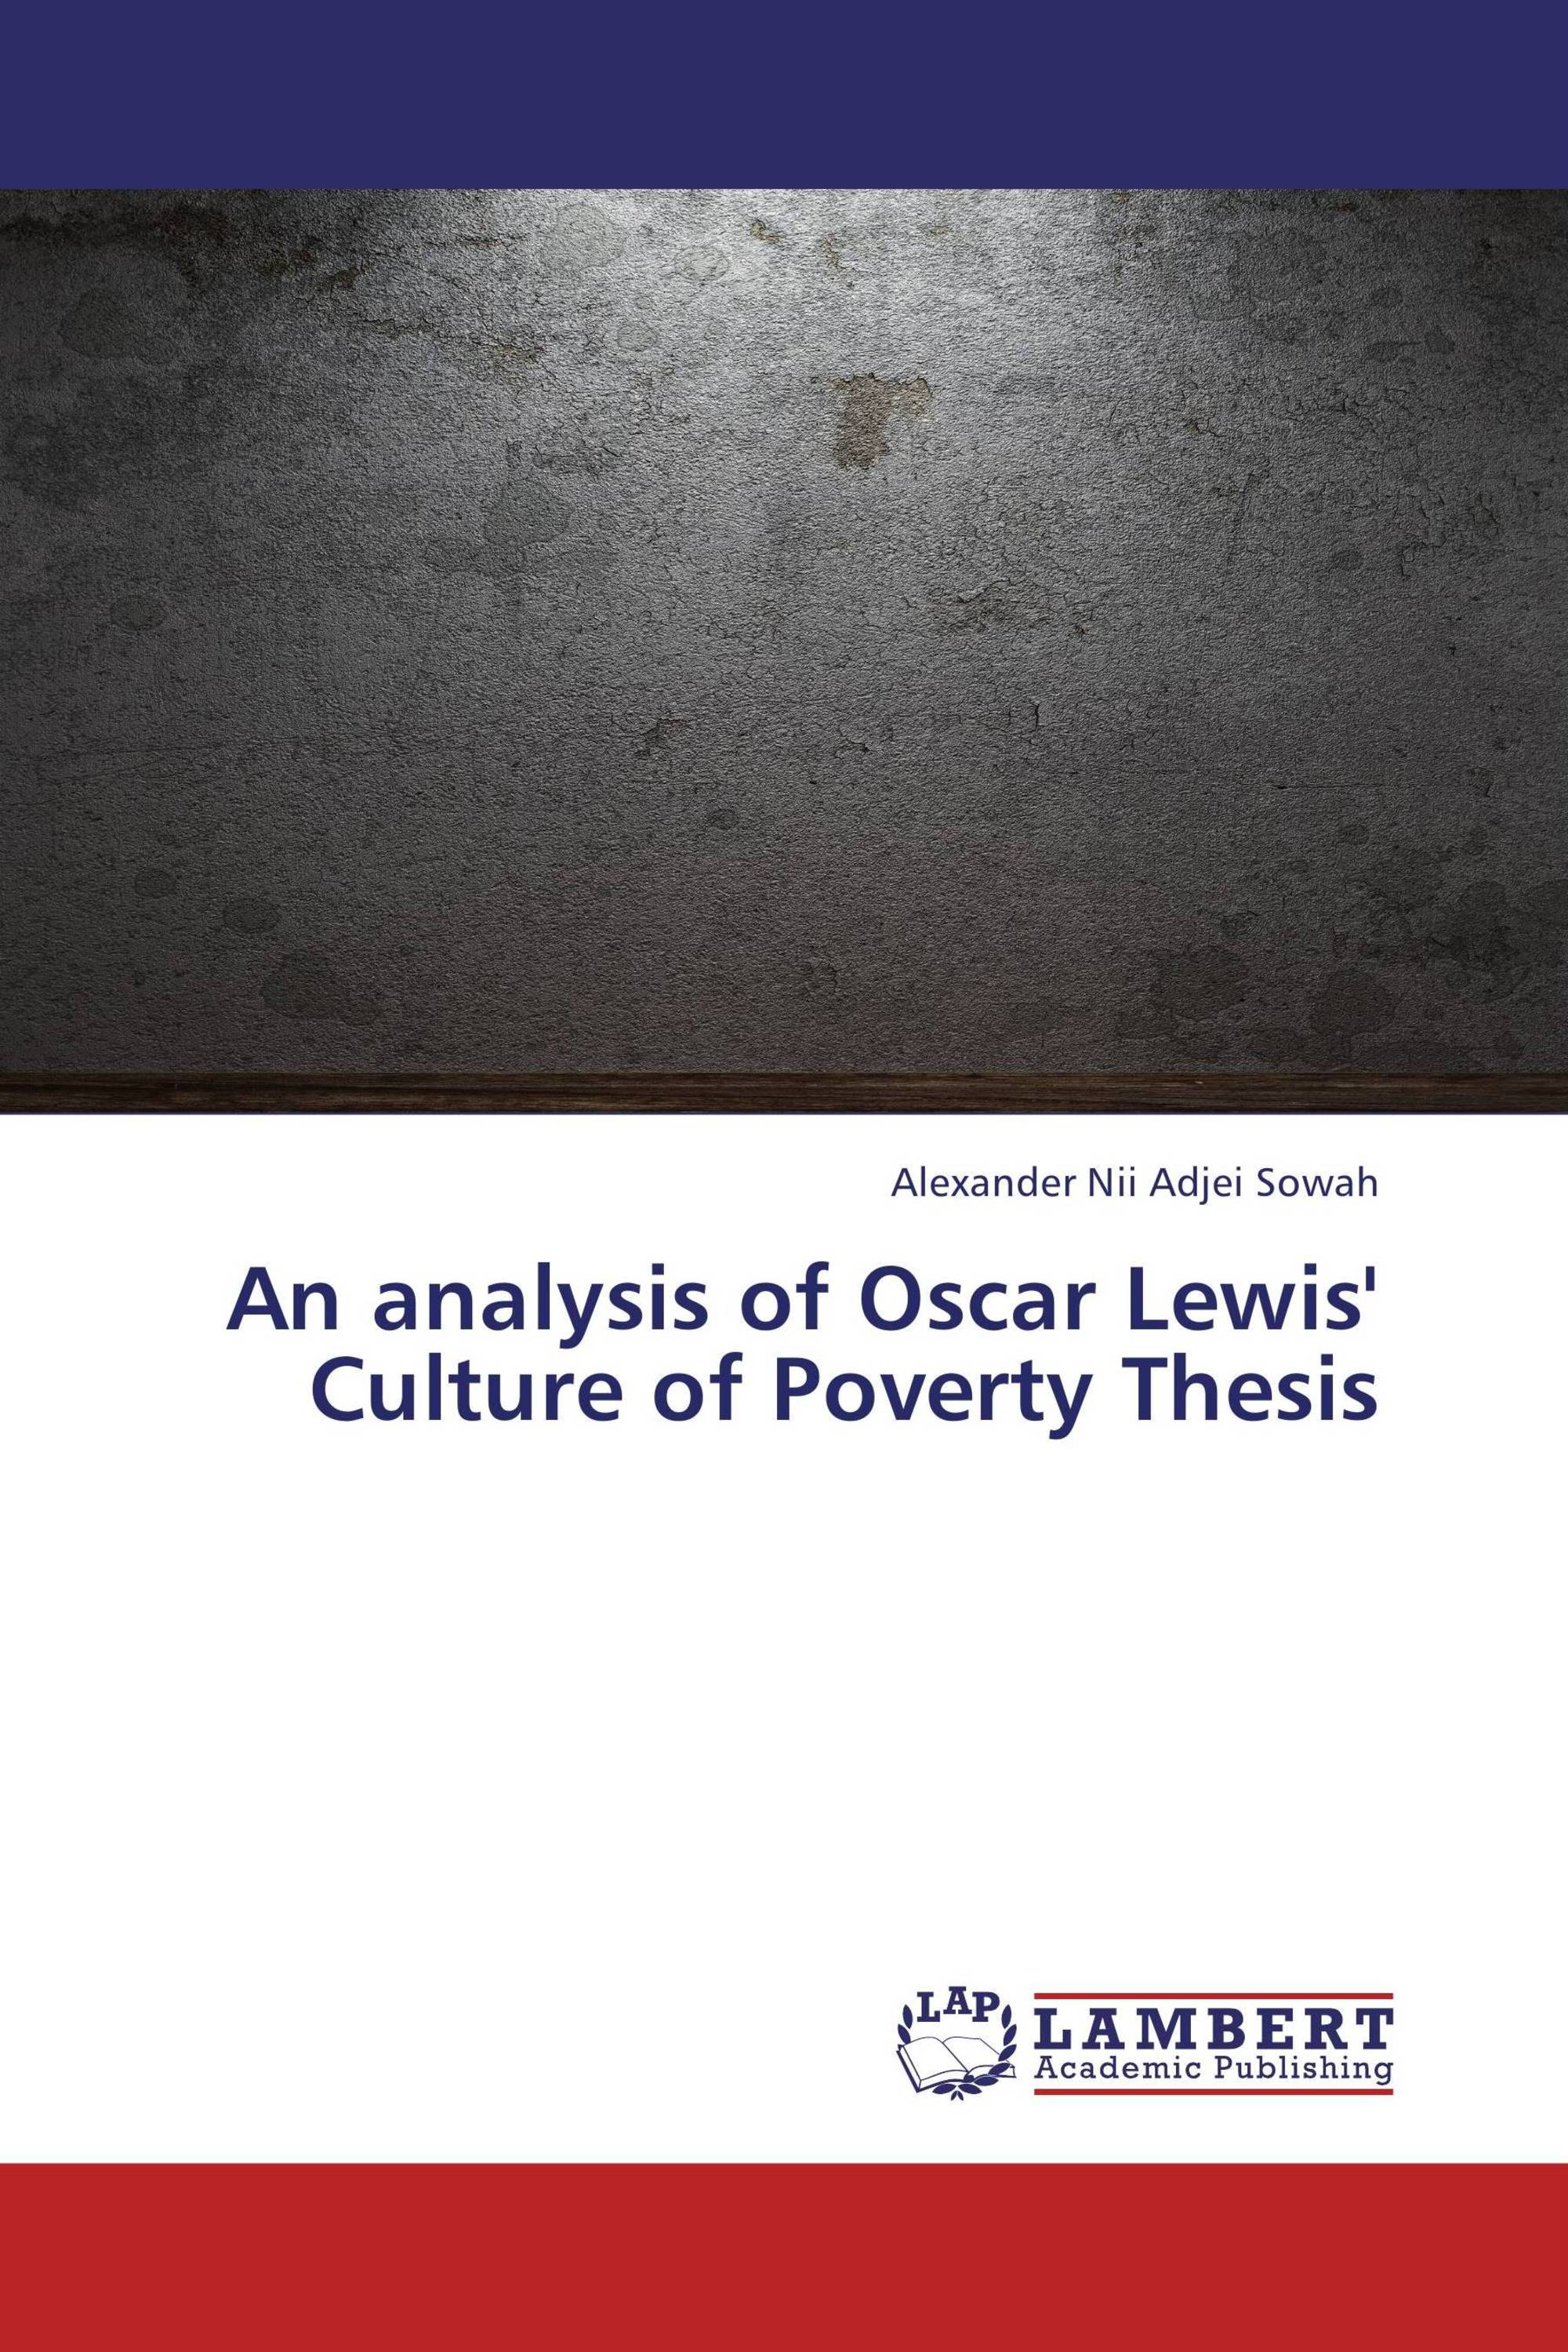 an analysis of oscar lewis culture of poverty thesis  an analysis of oscar lewis culture of poverty thesis